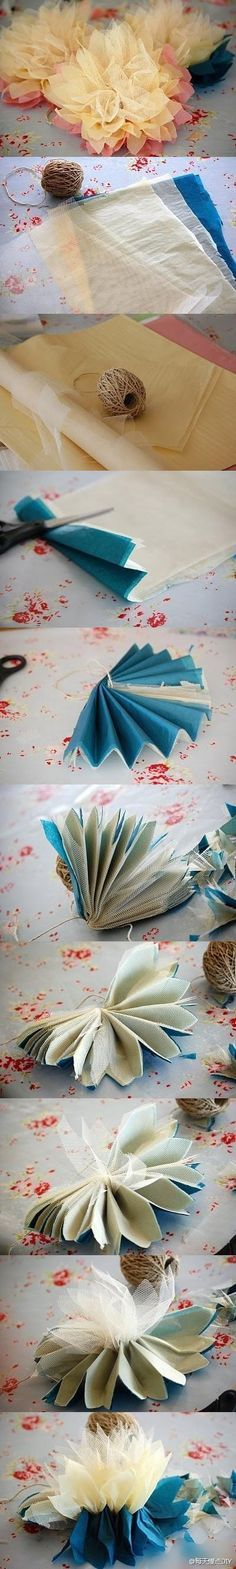 tulle flowers tutorial nice and easy